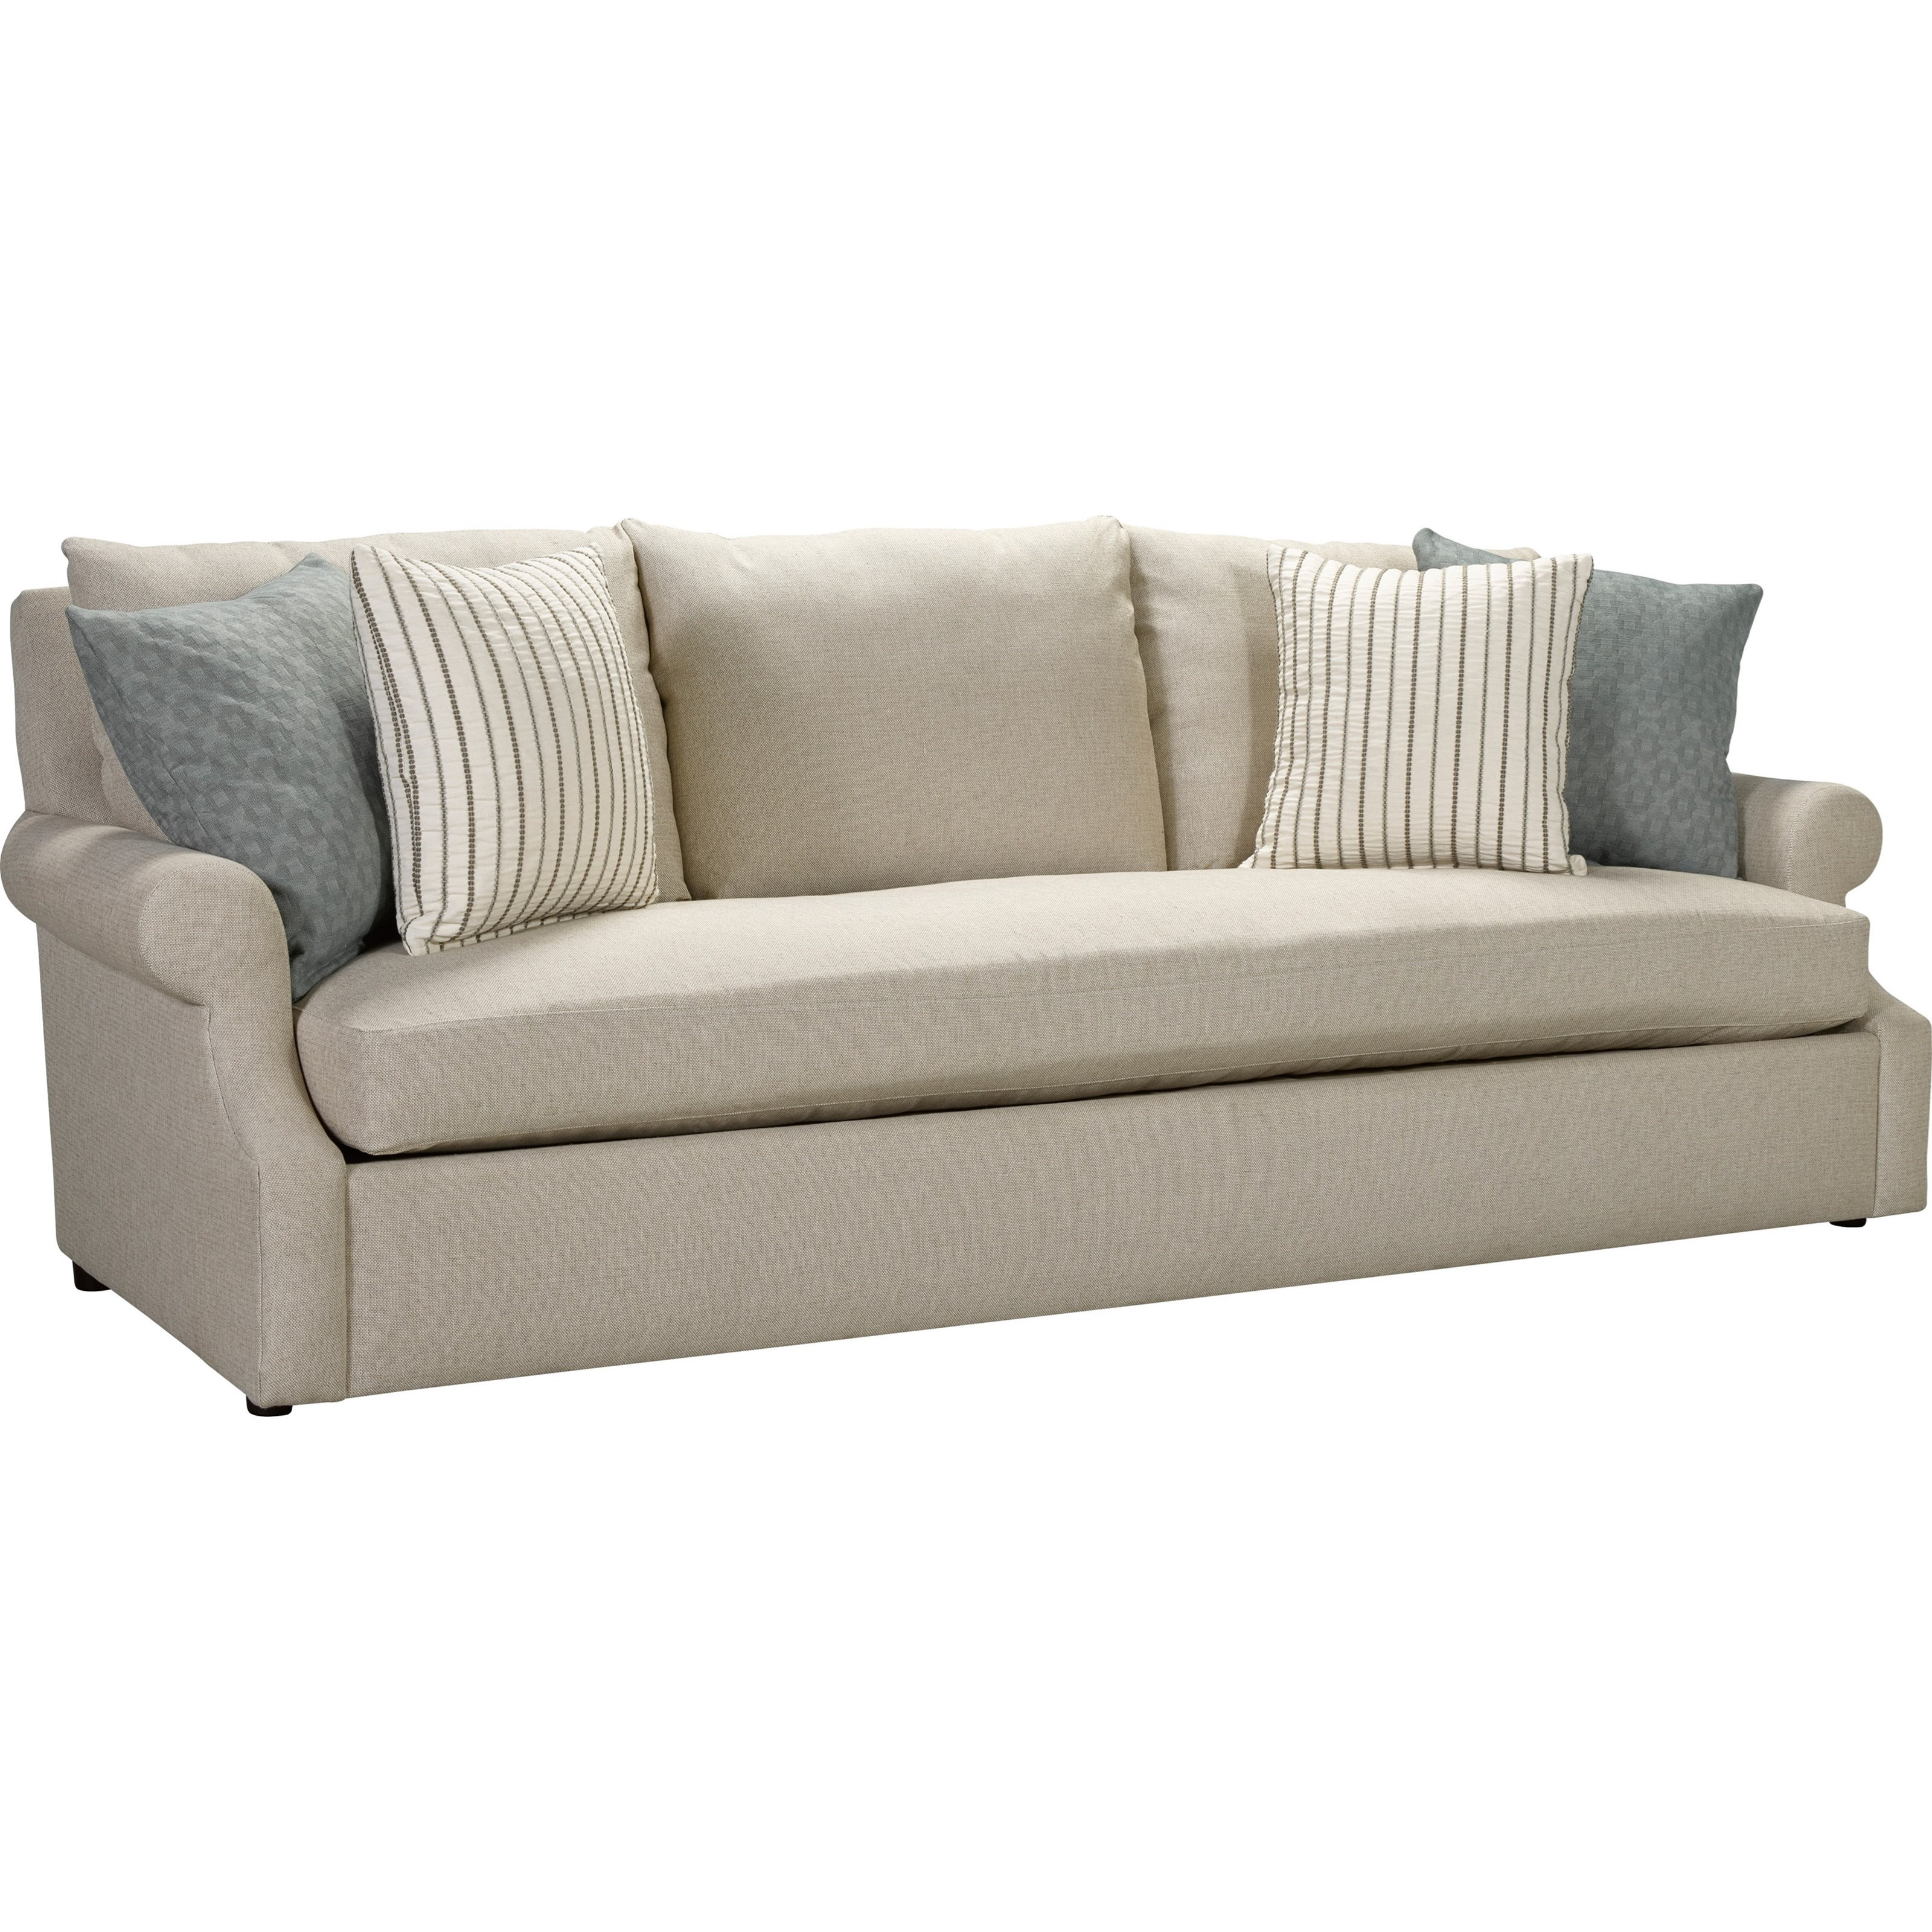 Broyhill furniture willa casual sofa with single seat for Broyhill chaise lounge cushions